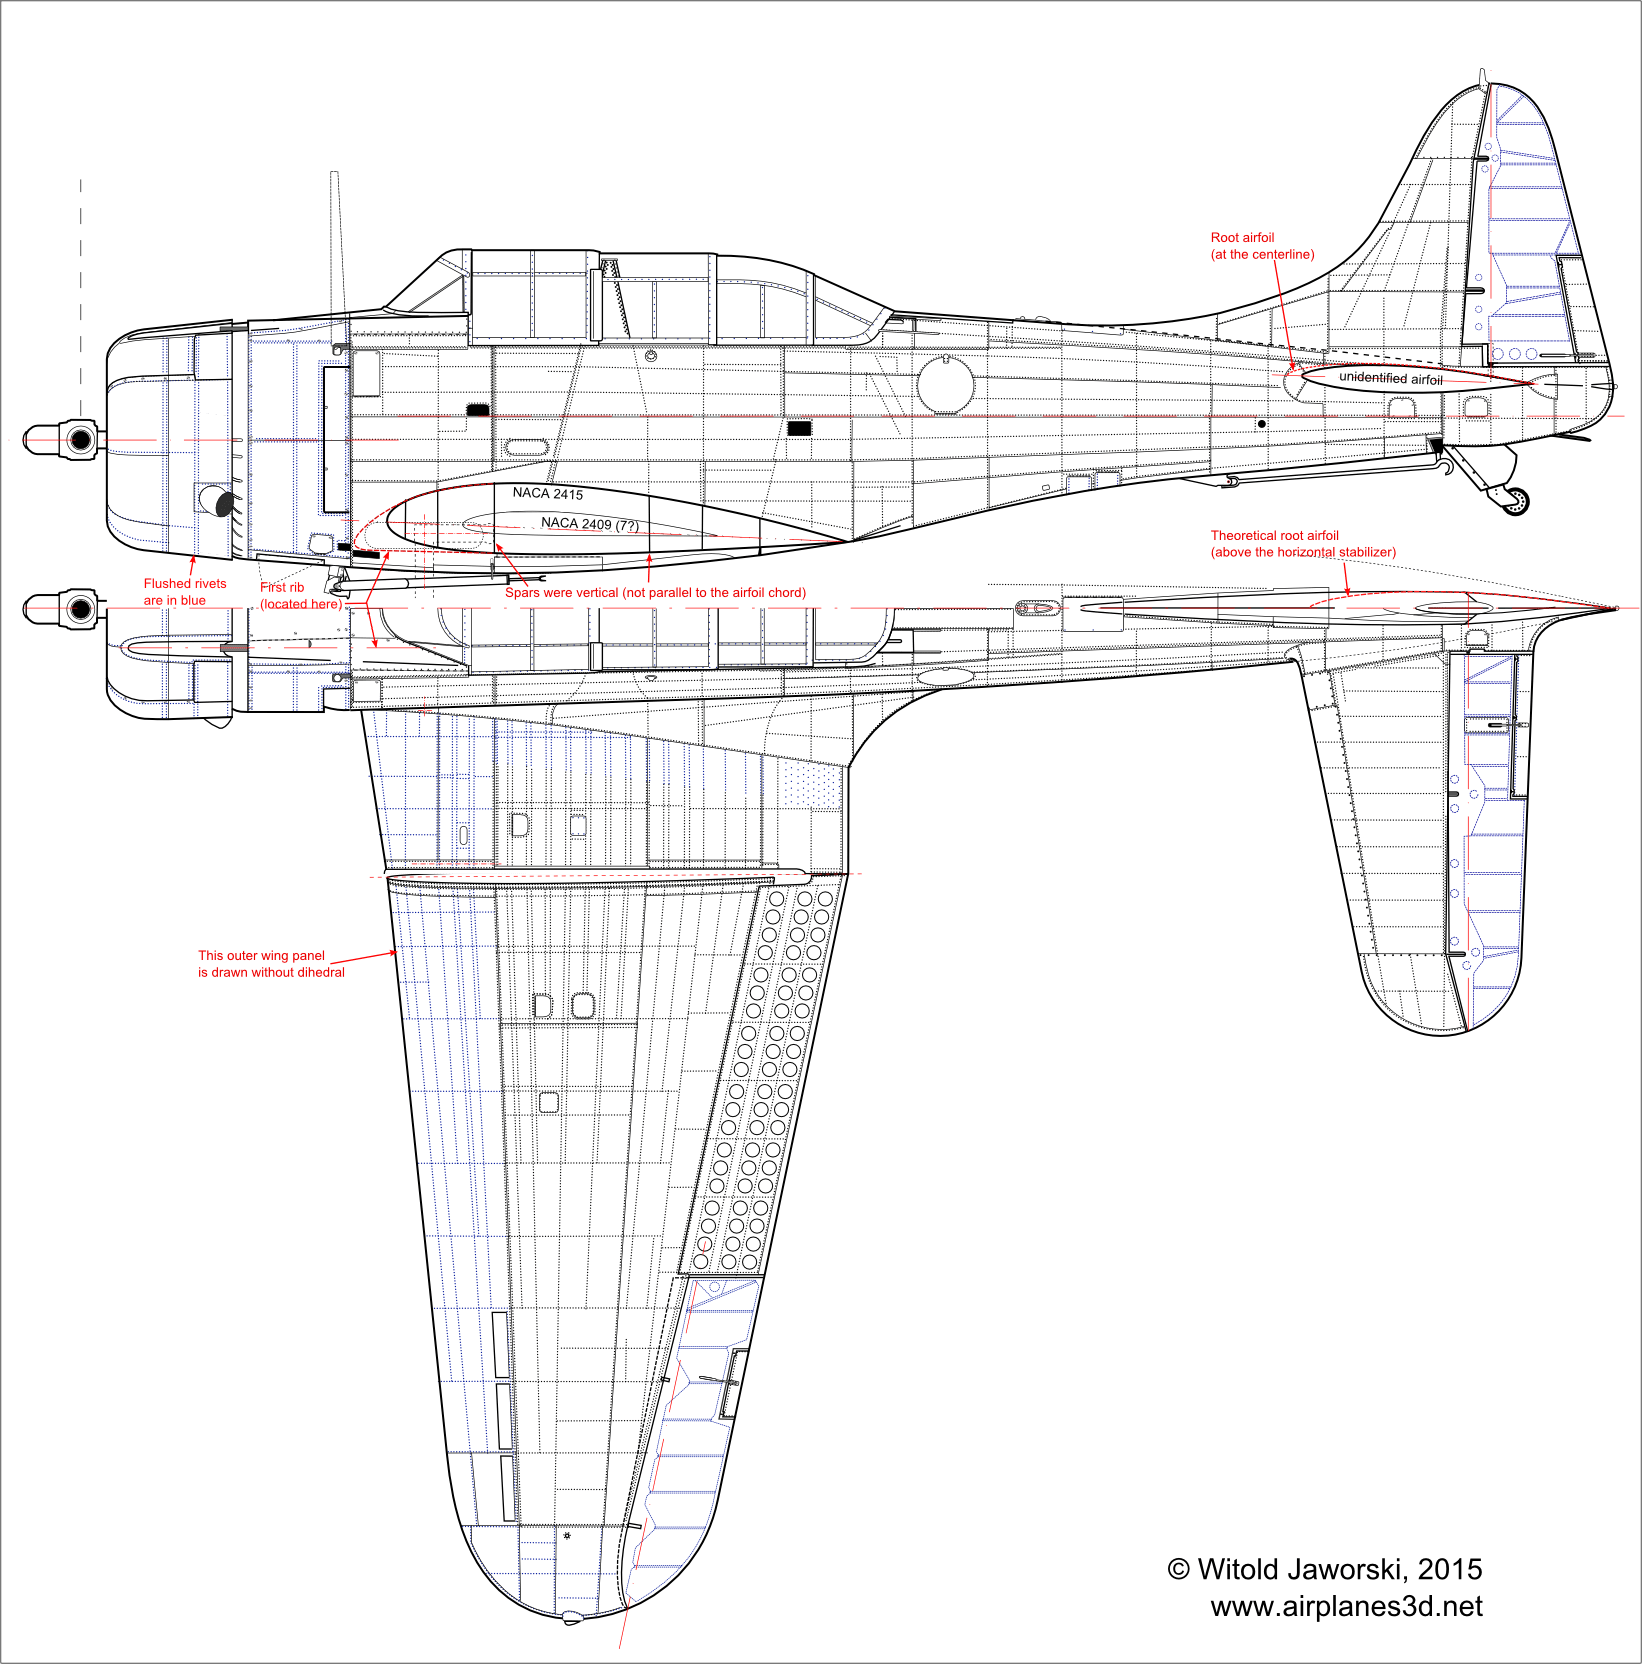 How Did I Draw The Top View Of The Sbd Dauntless